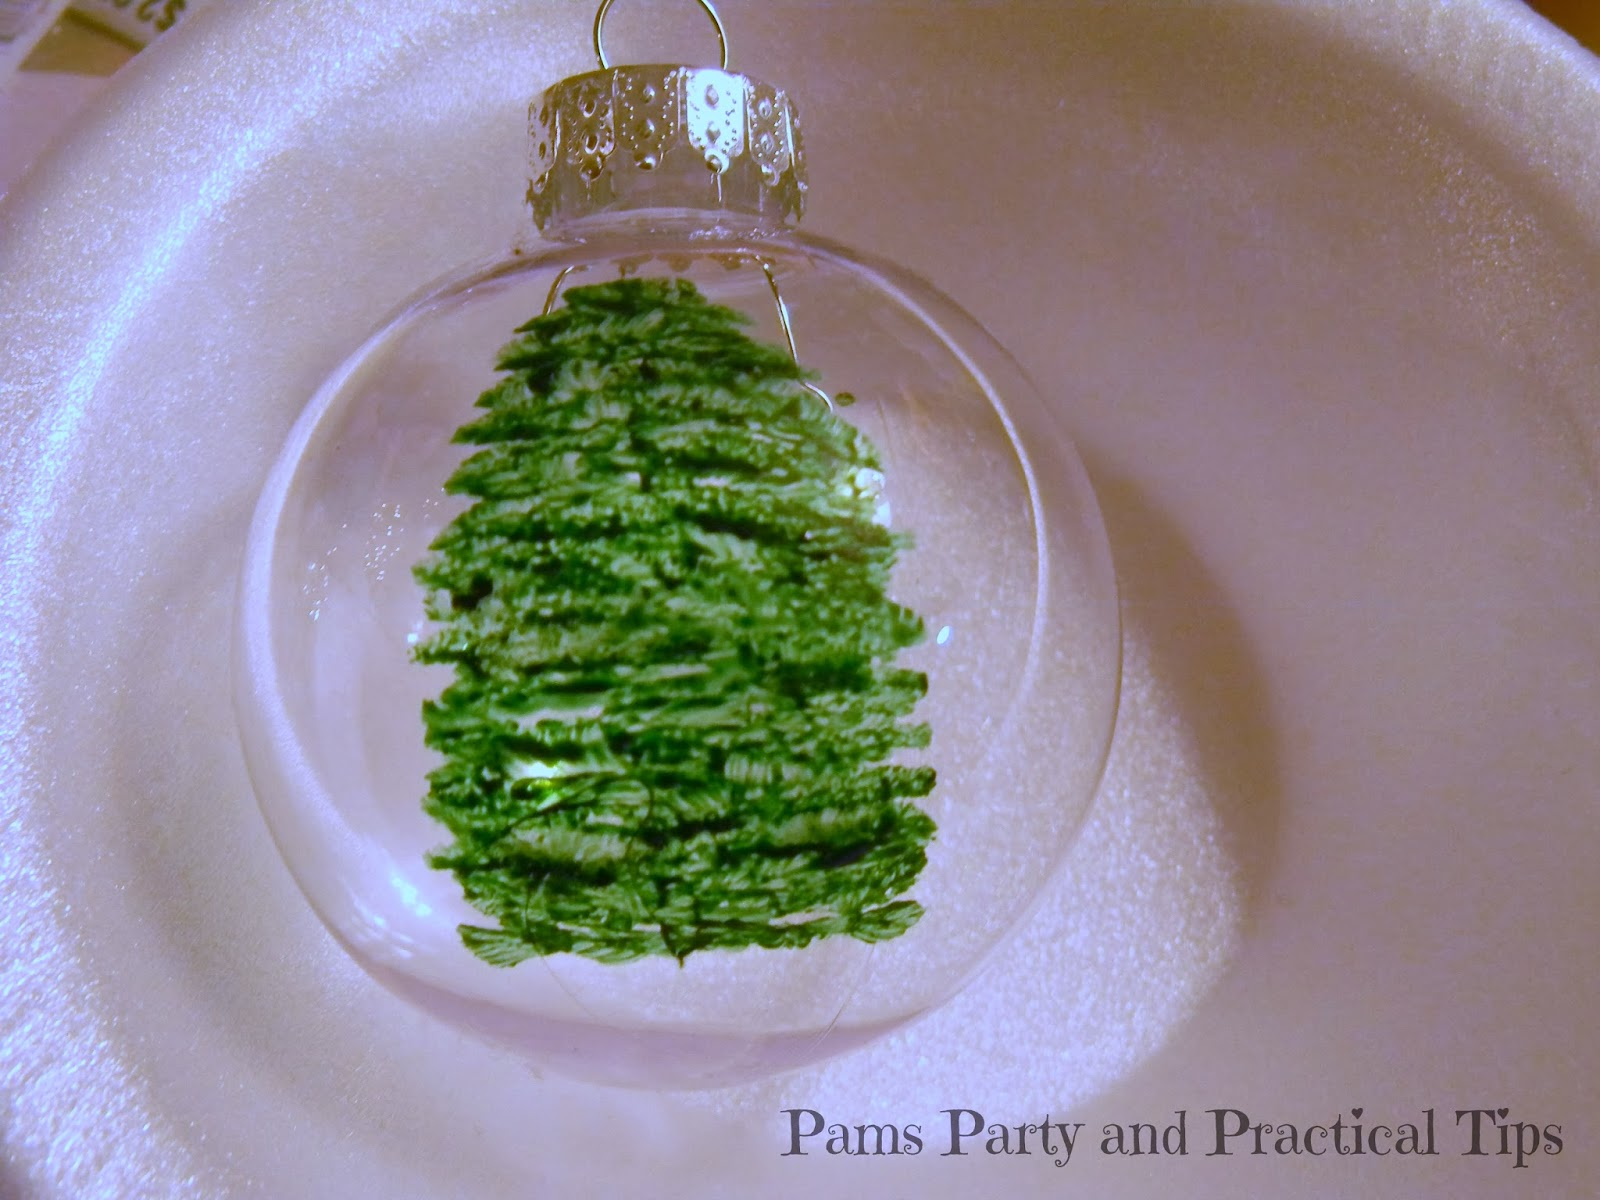 Pams Party & Practical Tips: Christmas Tree Ball Ornament